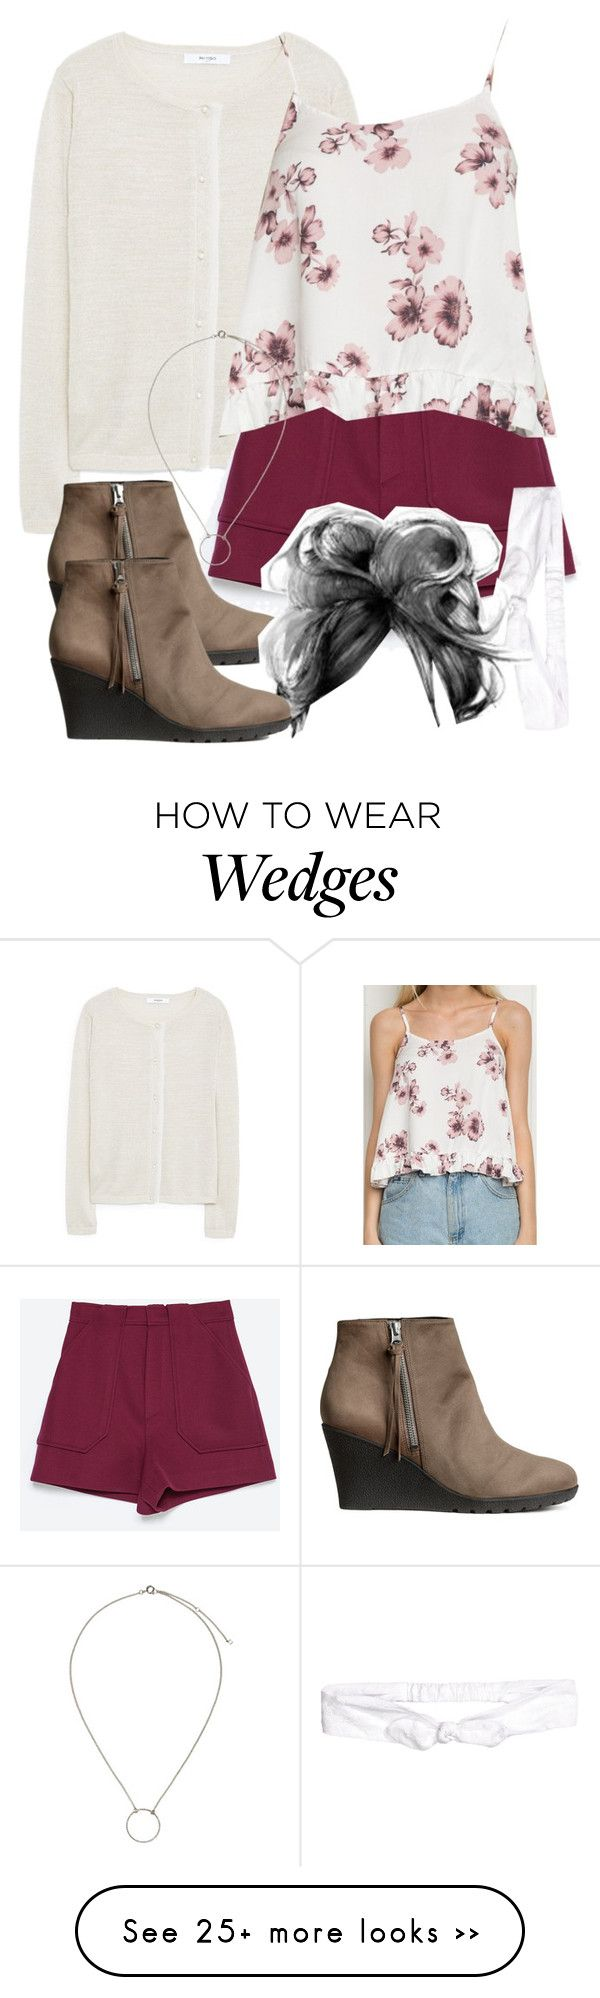 """""""Lydia Inspired Spain Friendly Outfit"""" by veterization on Polyvore featuring MANGO, Zara and H&M"""